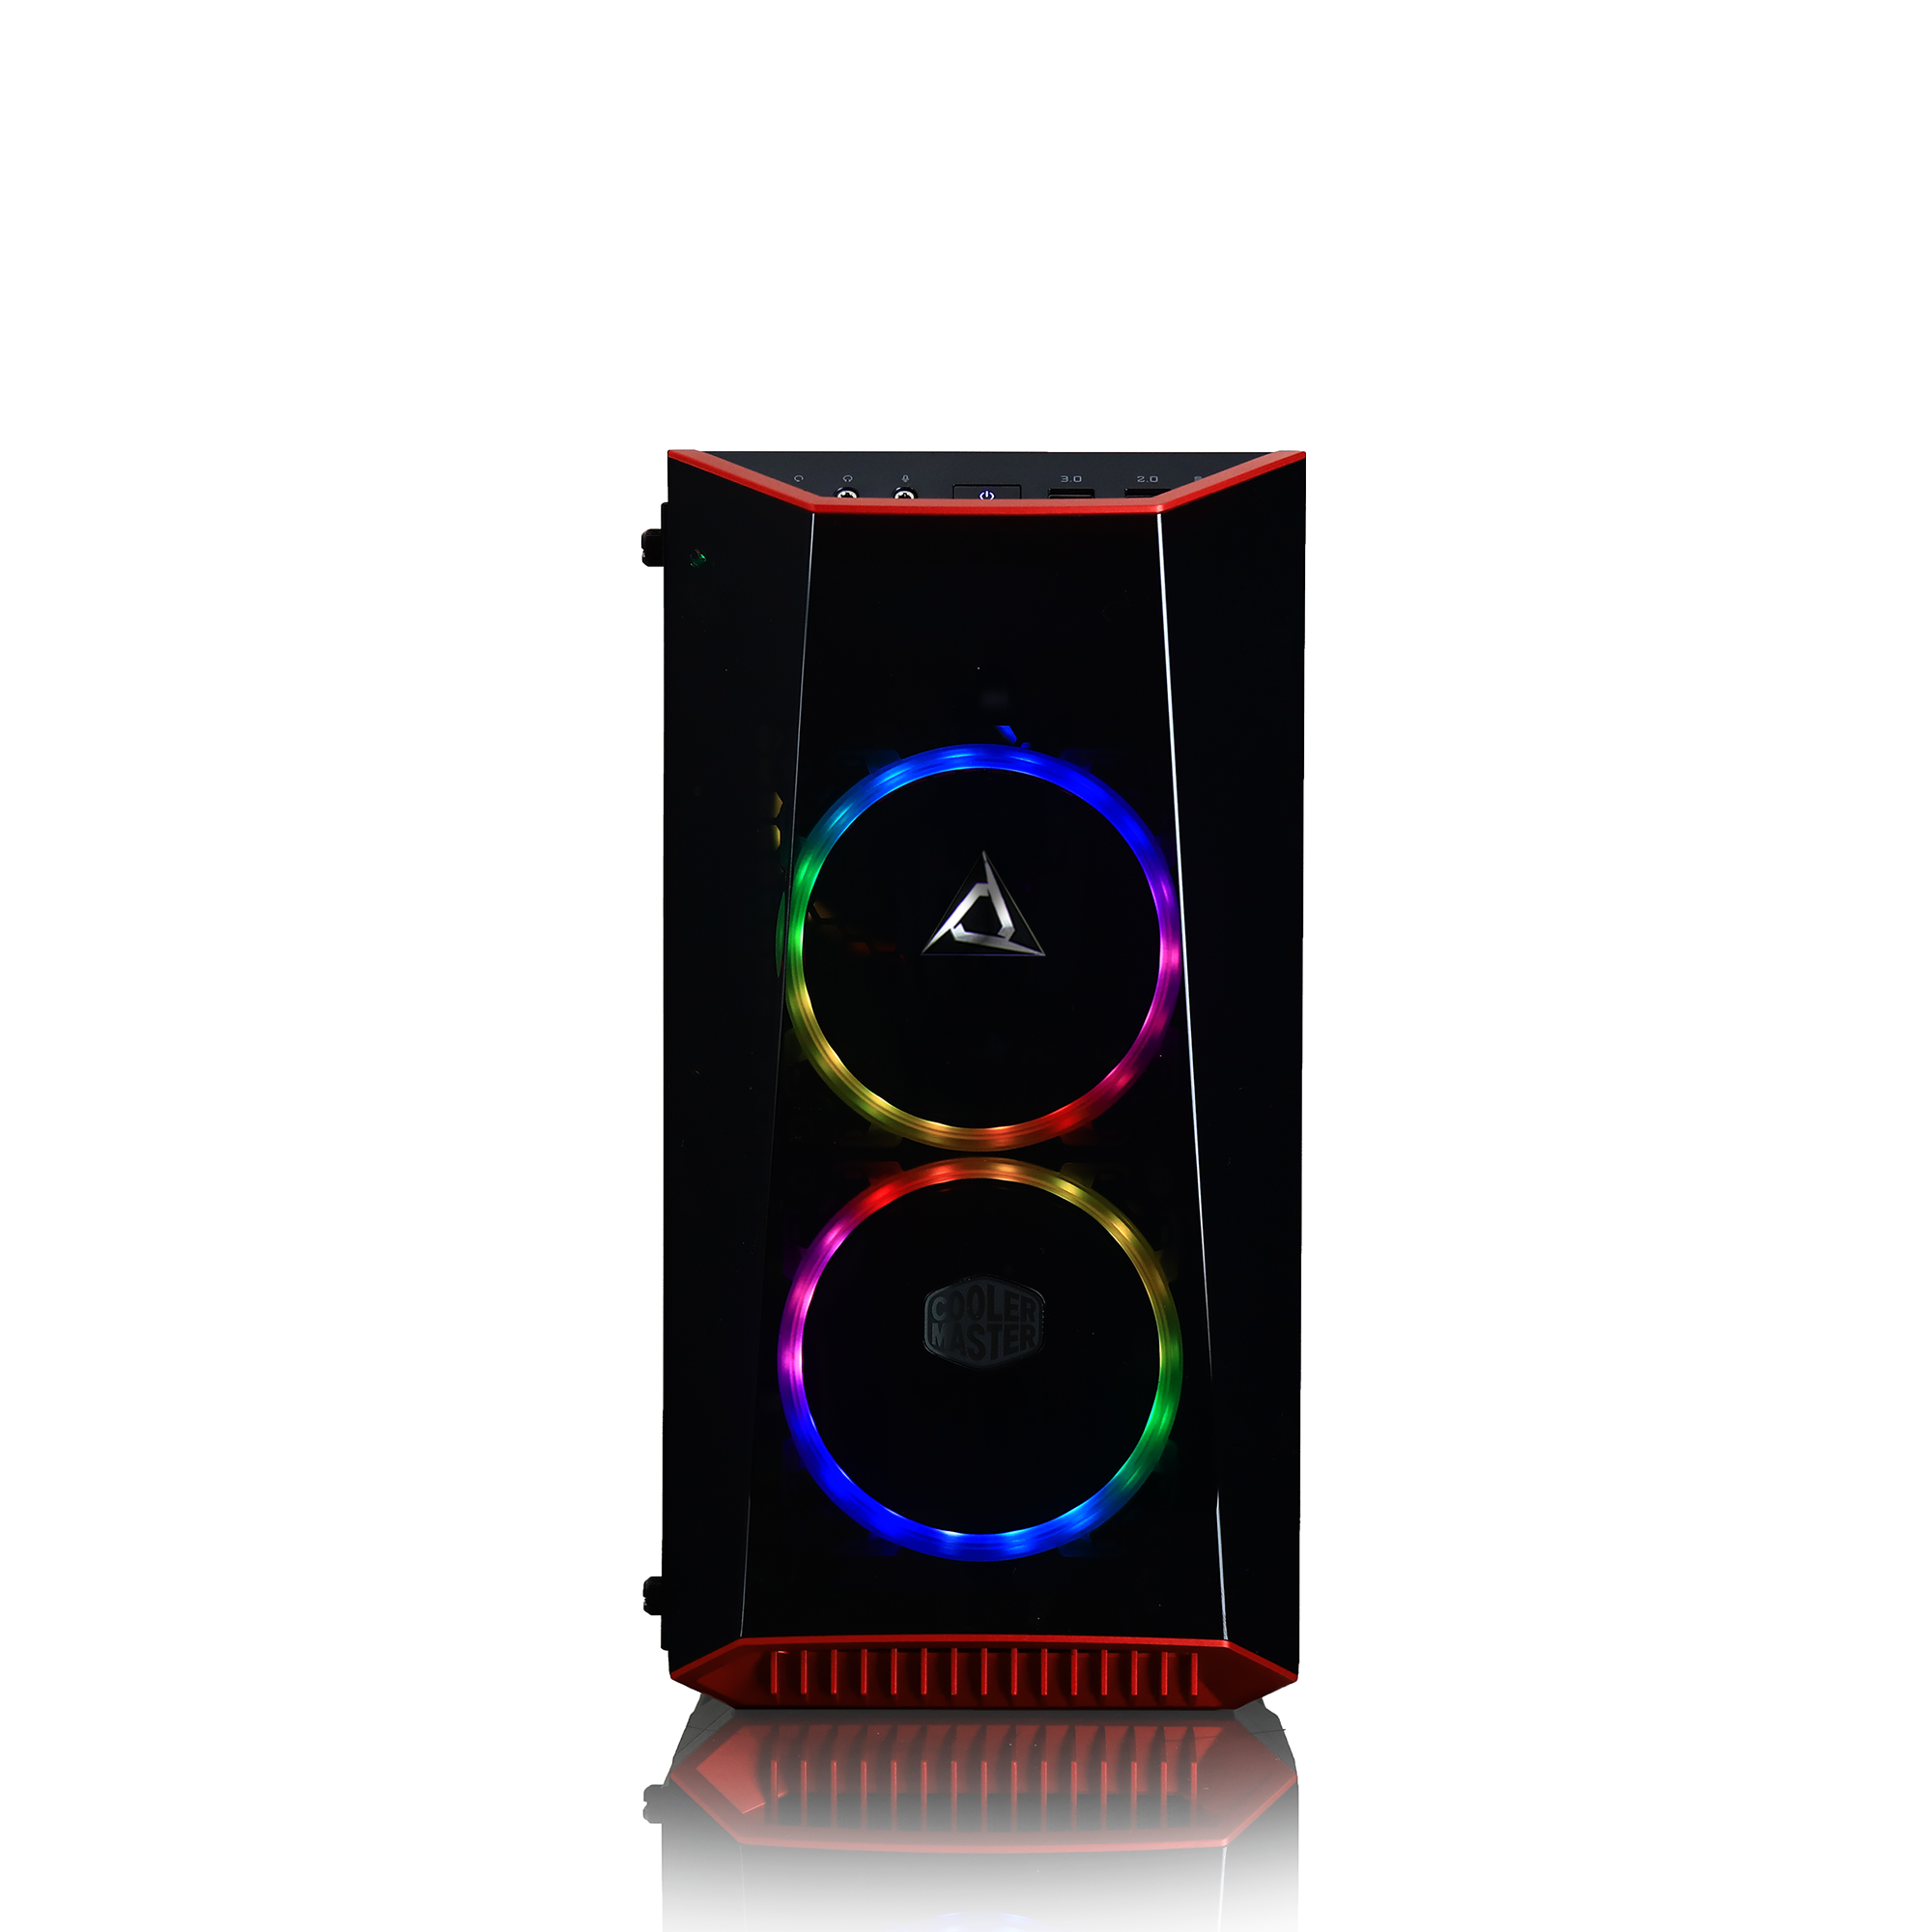 CLX Set Gaming Desktop: Intel i7-8700K, NVIDIA GeForce RTX 2070 8GB GDDR5 16GB RAM, 1TB HDD + 240GB SSD + Free Shipping $1099